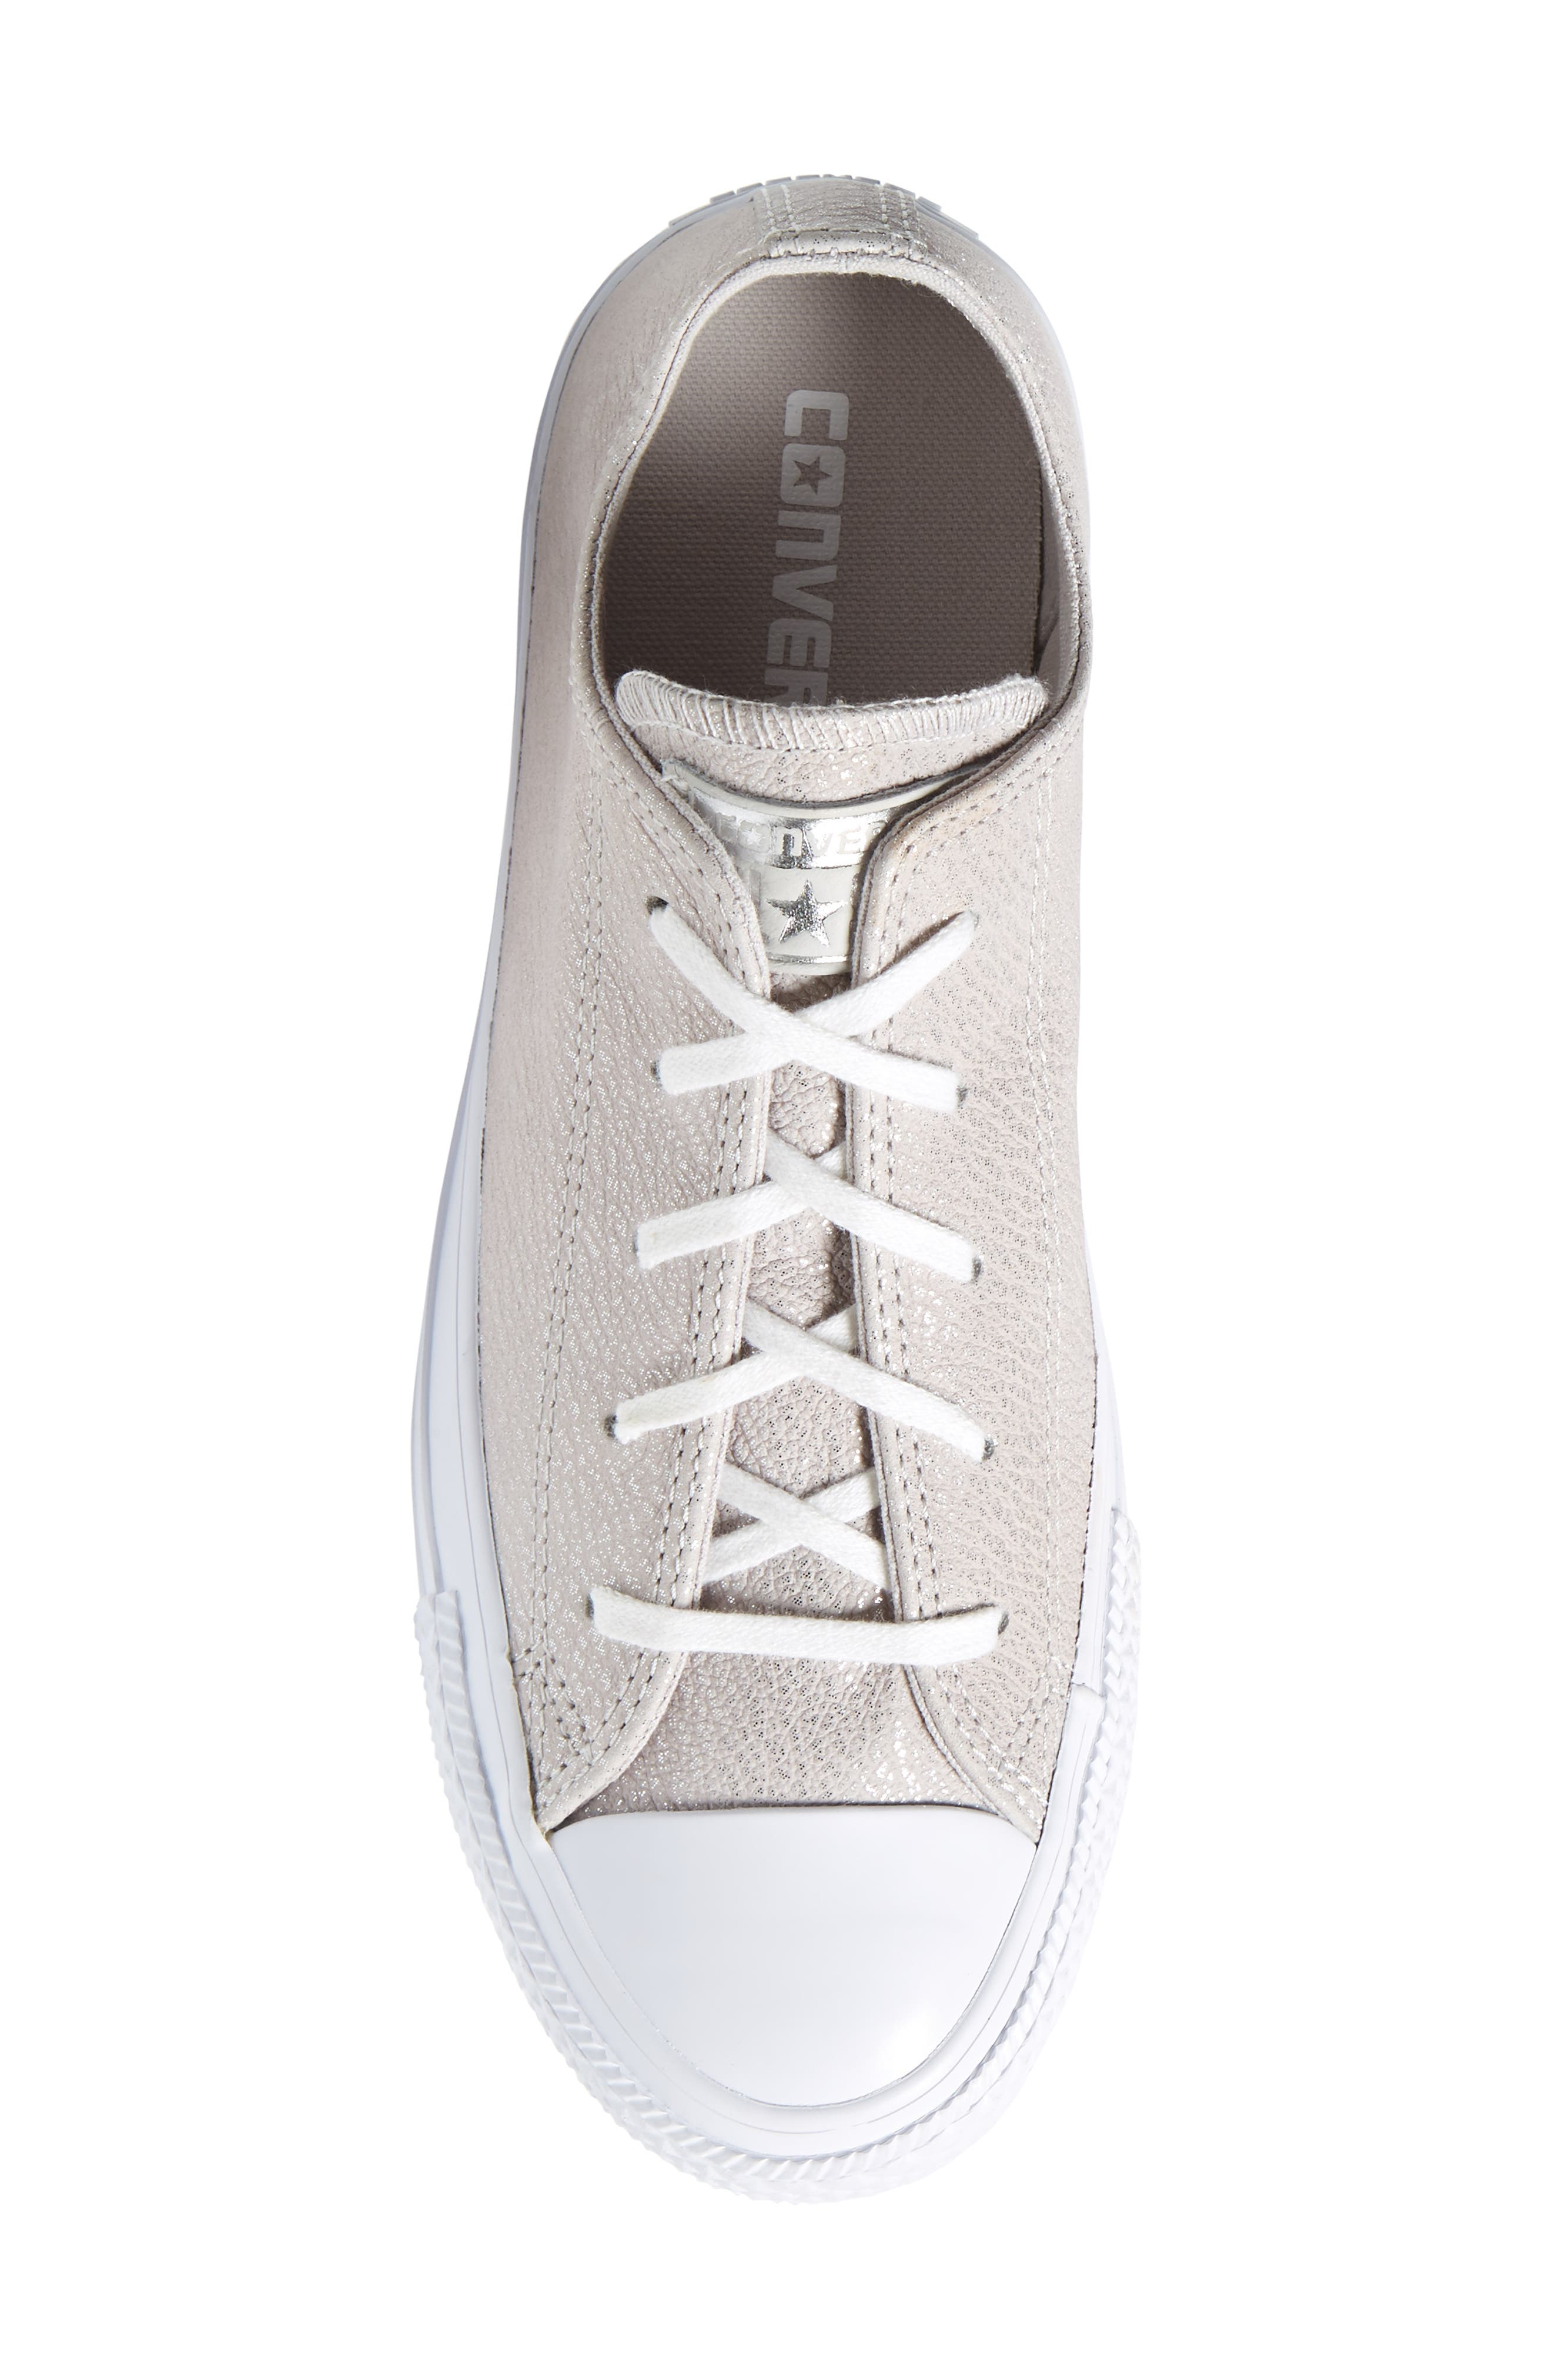 Chuck Taylor<sup>®</sup> All Star<sup>®</sup> Tipped Metallic Low Top Sneaker,                             Alternate thumbnail 5, color,                             Pale Putty